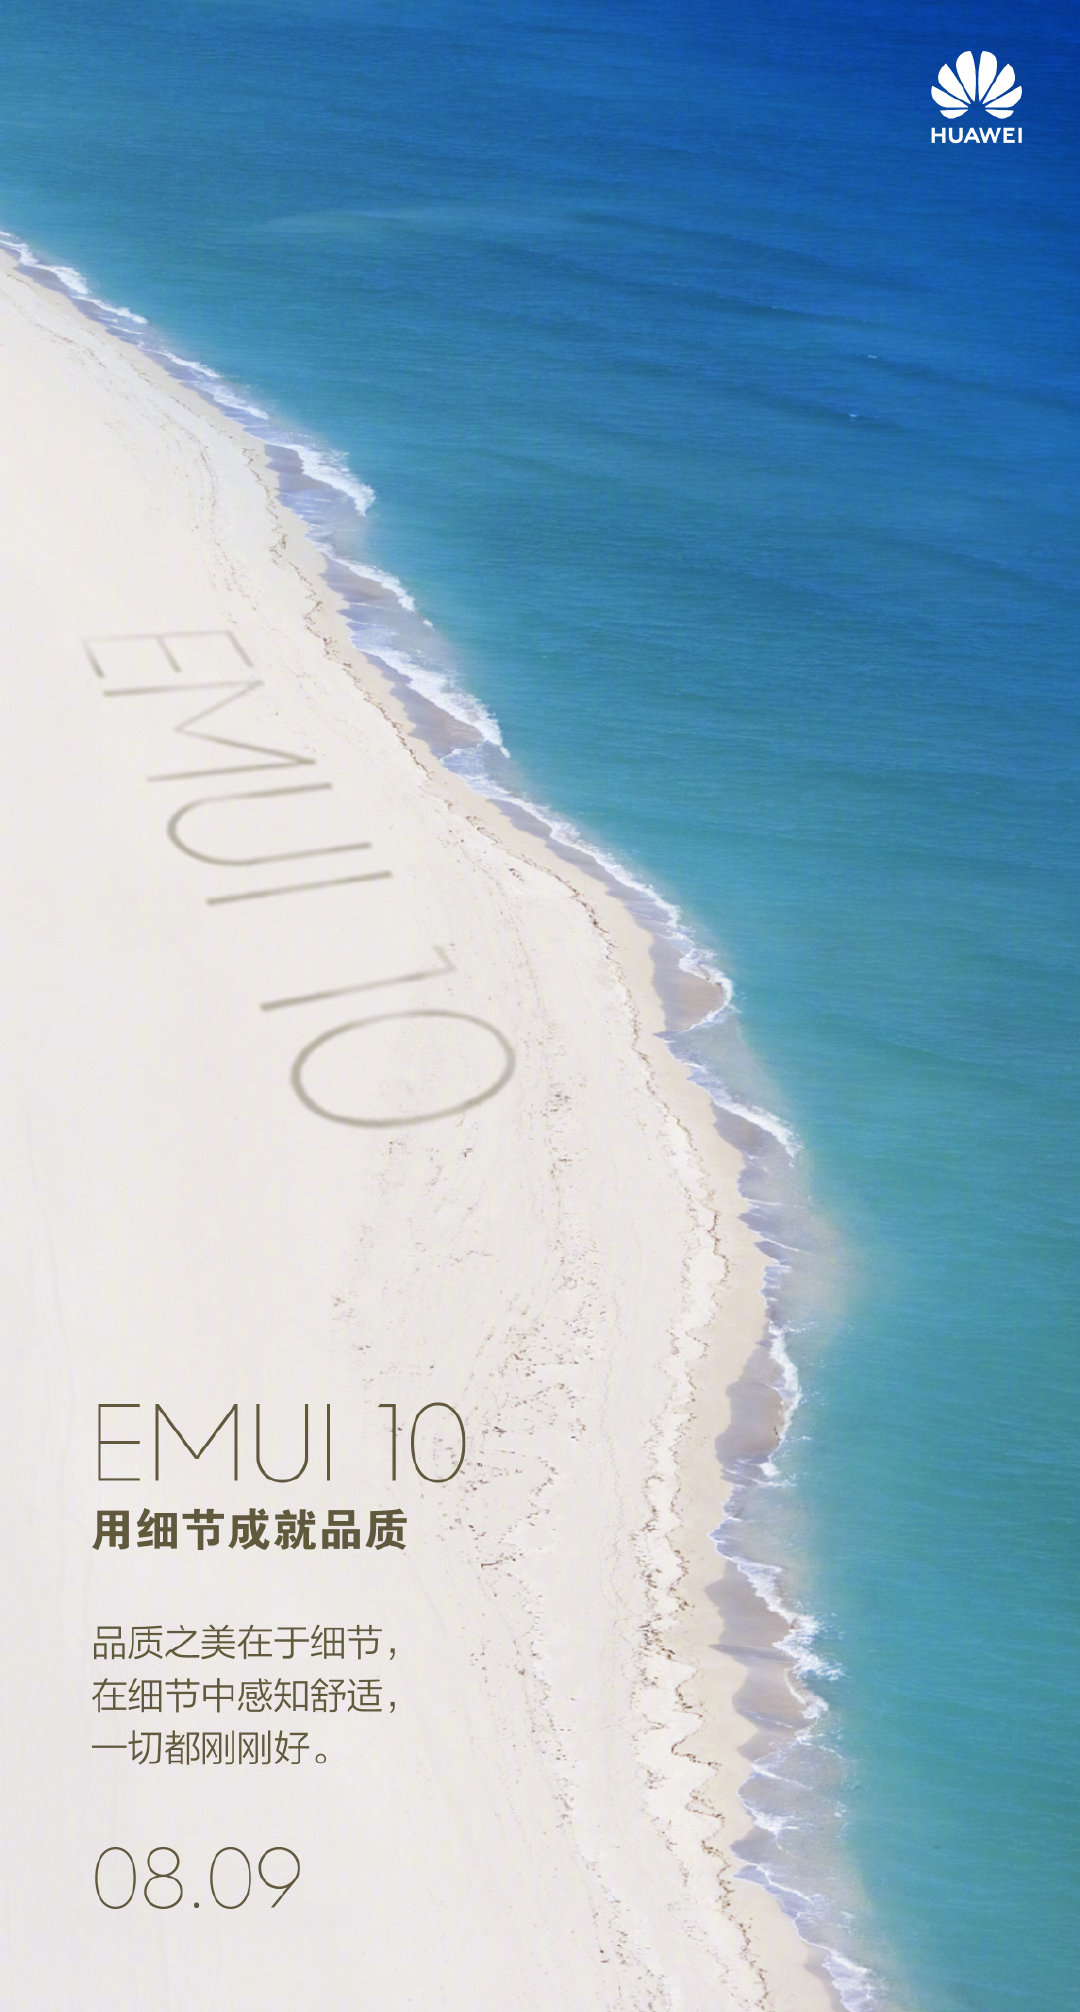 New EMUI 10 teaser hints at design, quality and features - Huawei